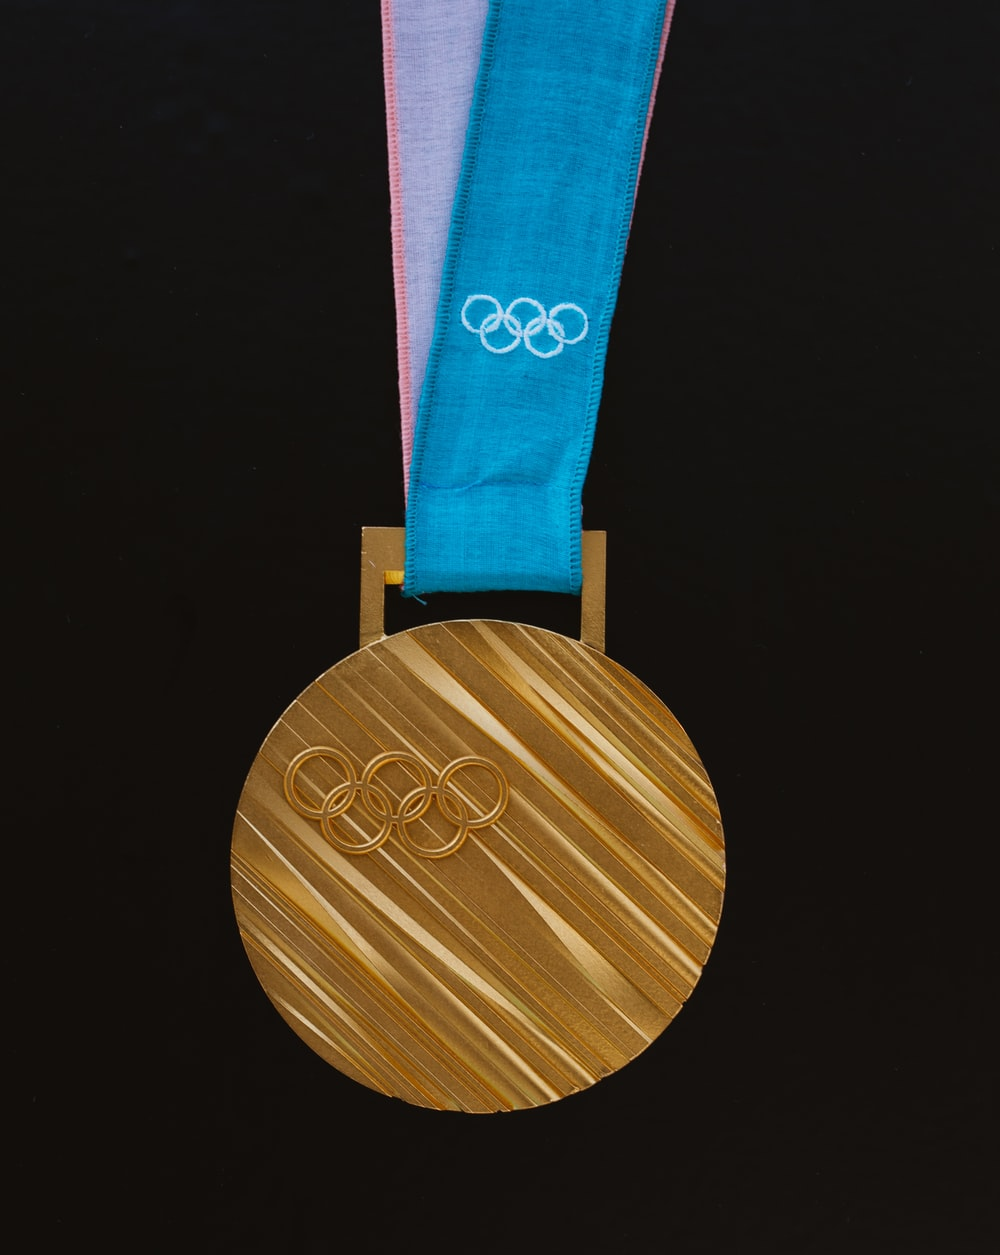 gold-colored Olympics medallion